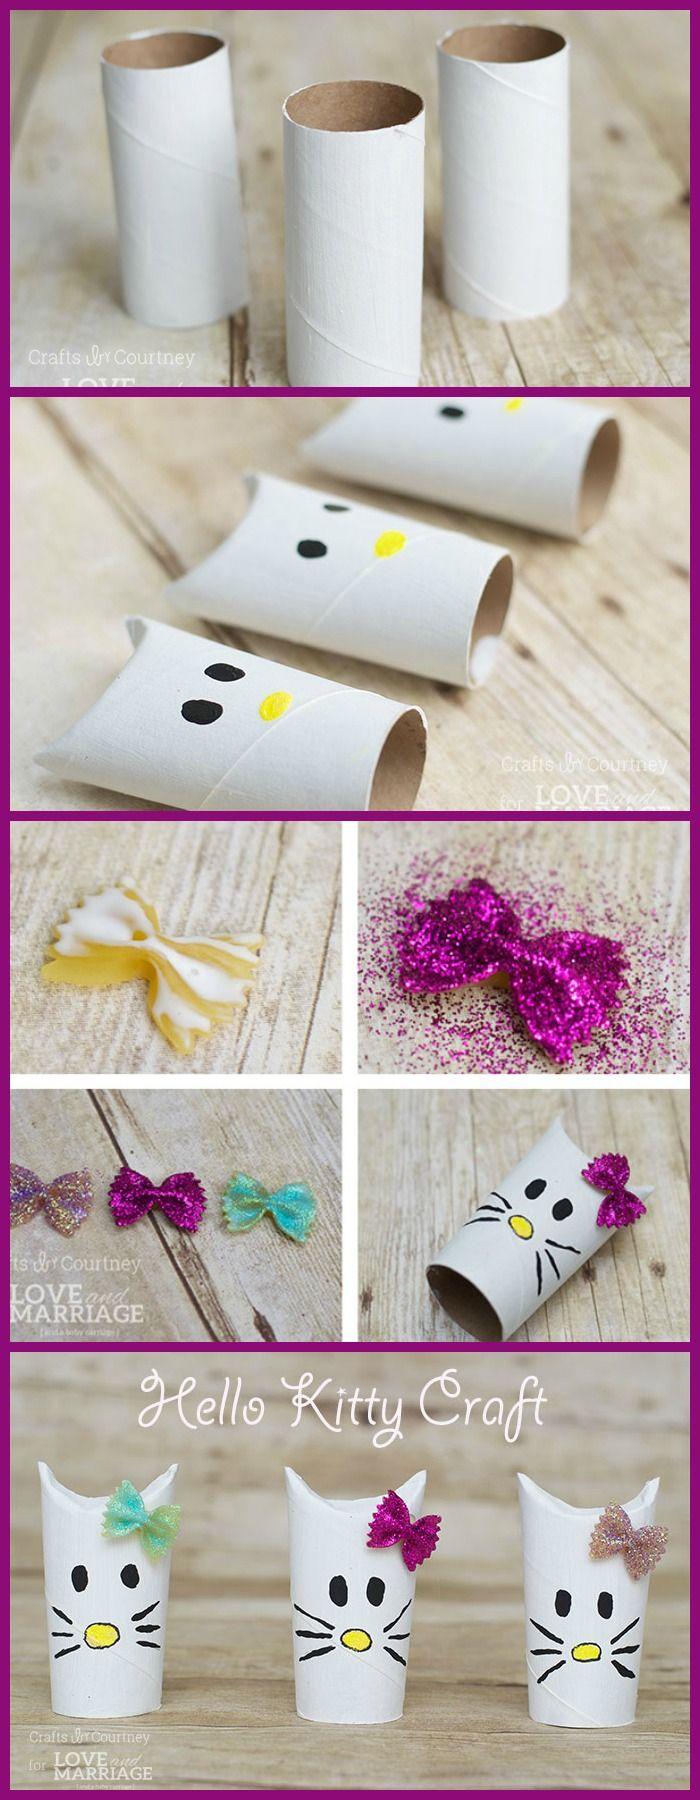 The cutest Hello Kitty craft ever! Made with noddles, paint and toilet paper rolls! #RoseArt #RoseArtFun